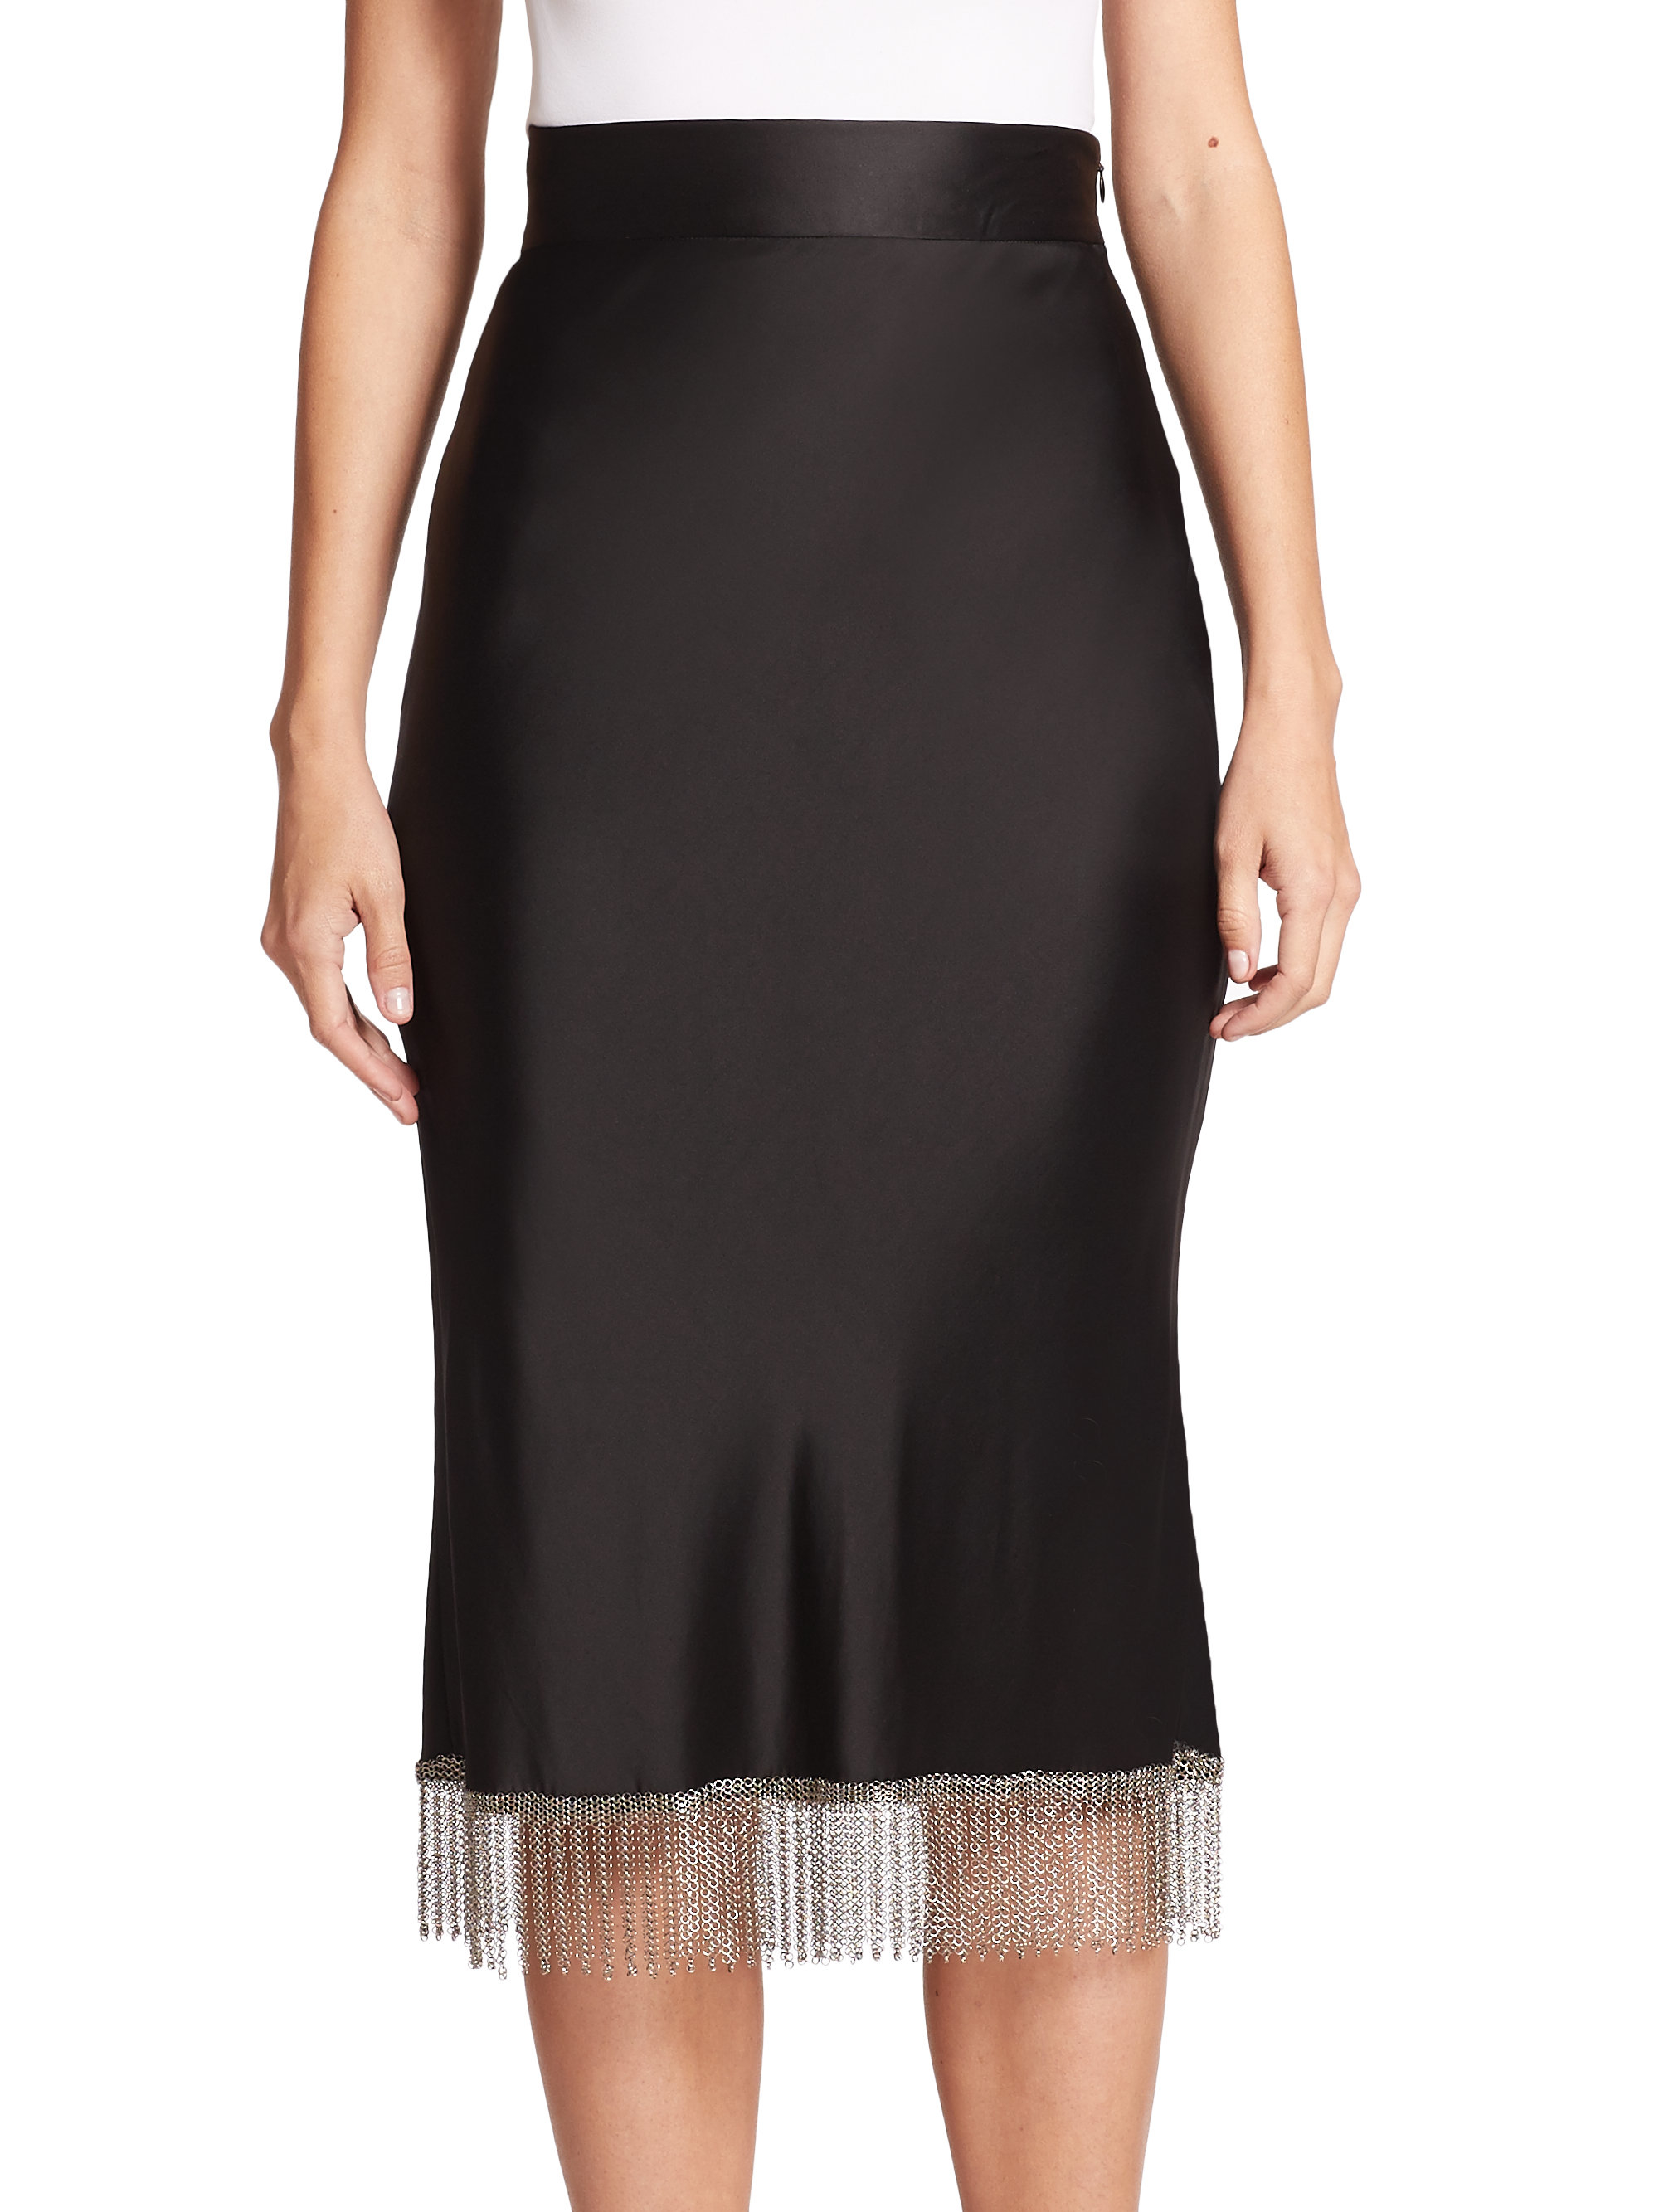 Alexander wang High-waist Chainmail-fringe Skirt in Black | Lyst